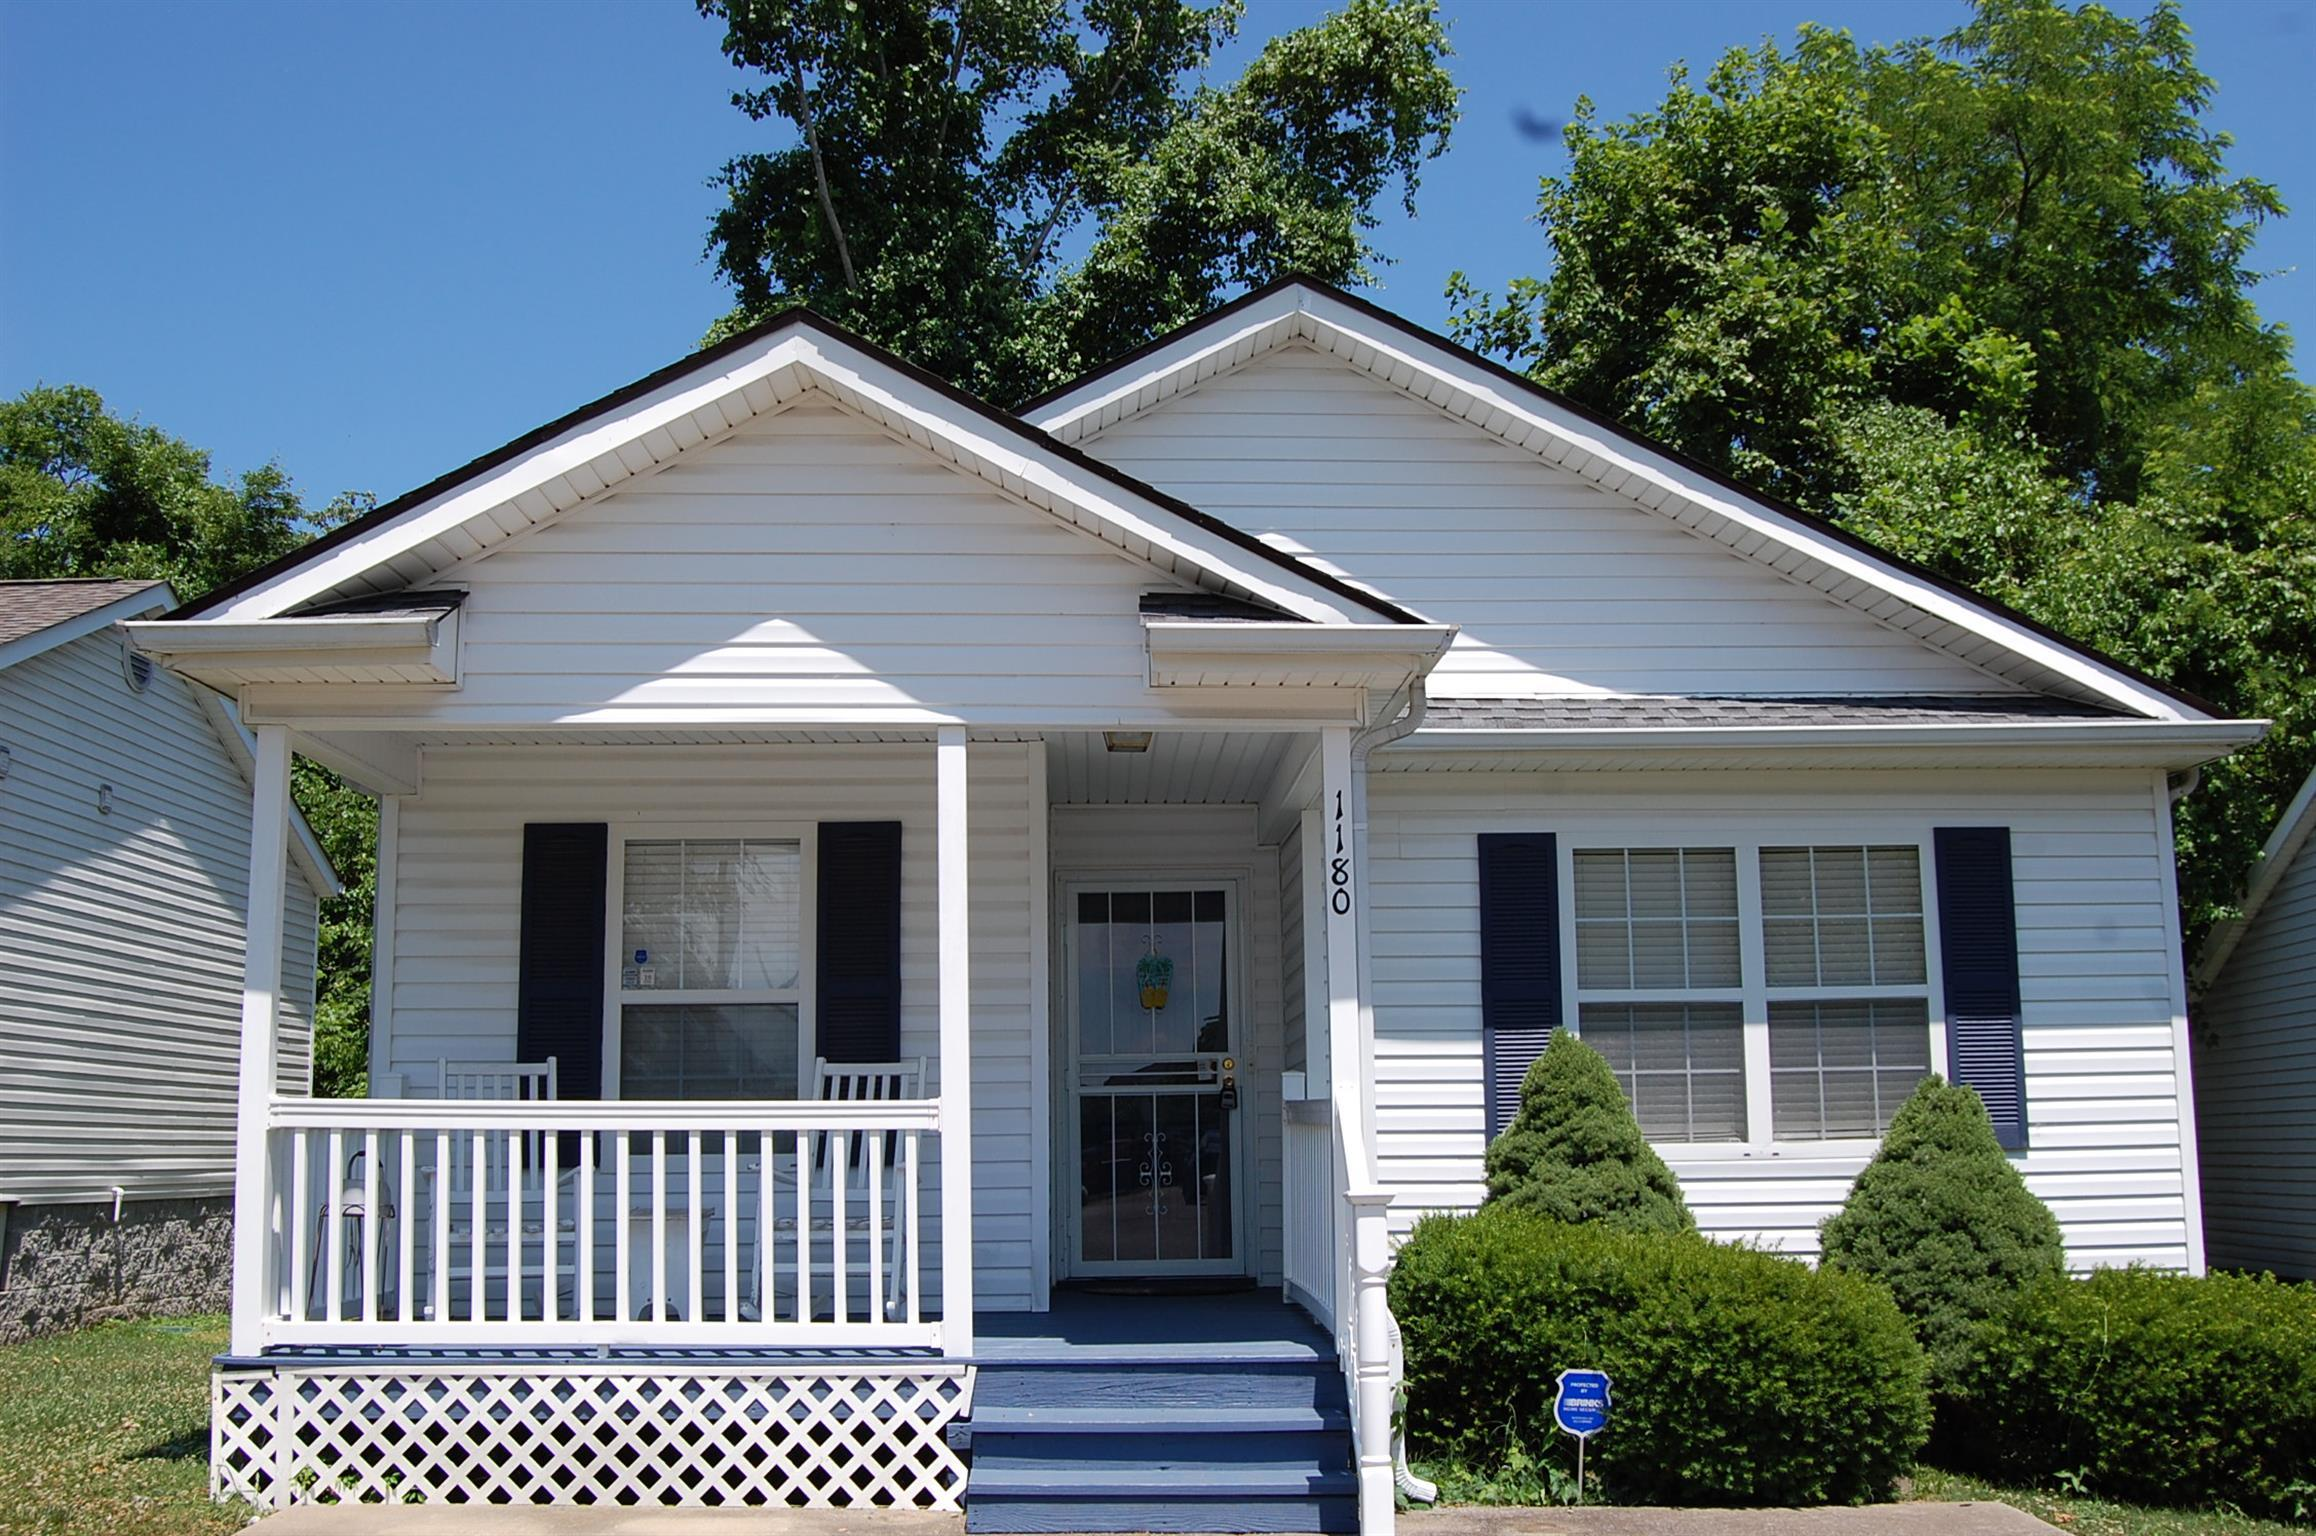 Brittany Park Homes For Sale Antioch TN